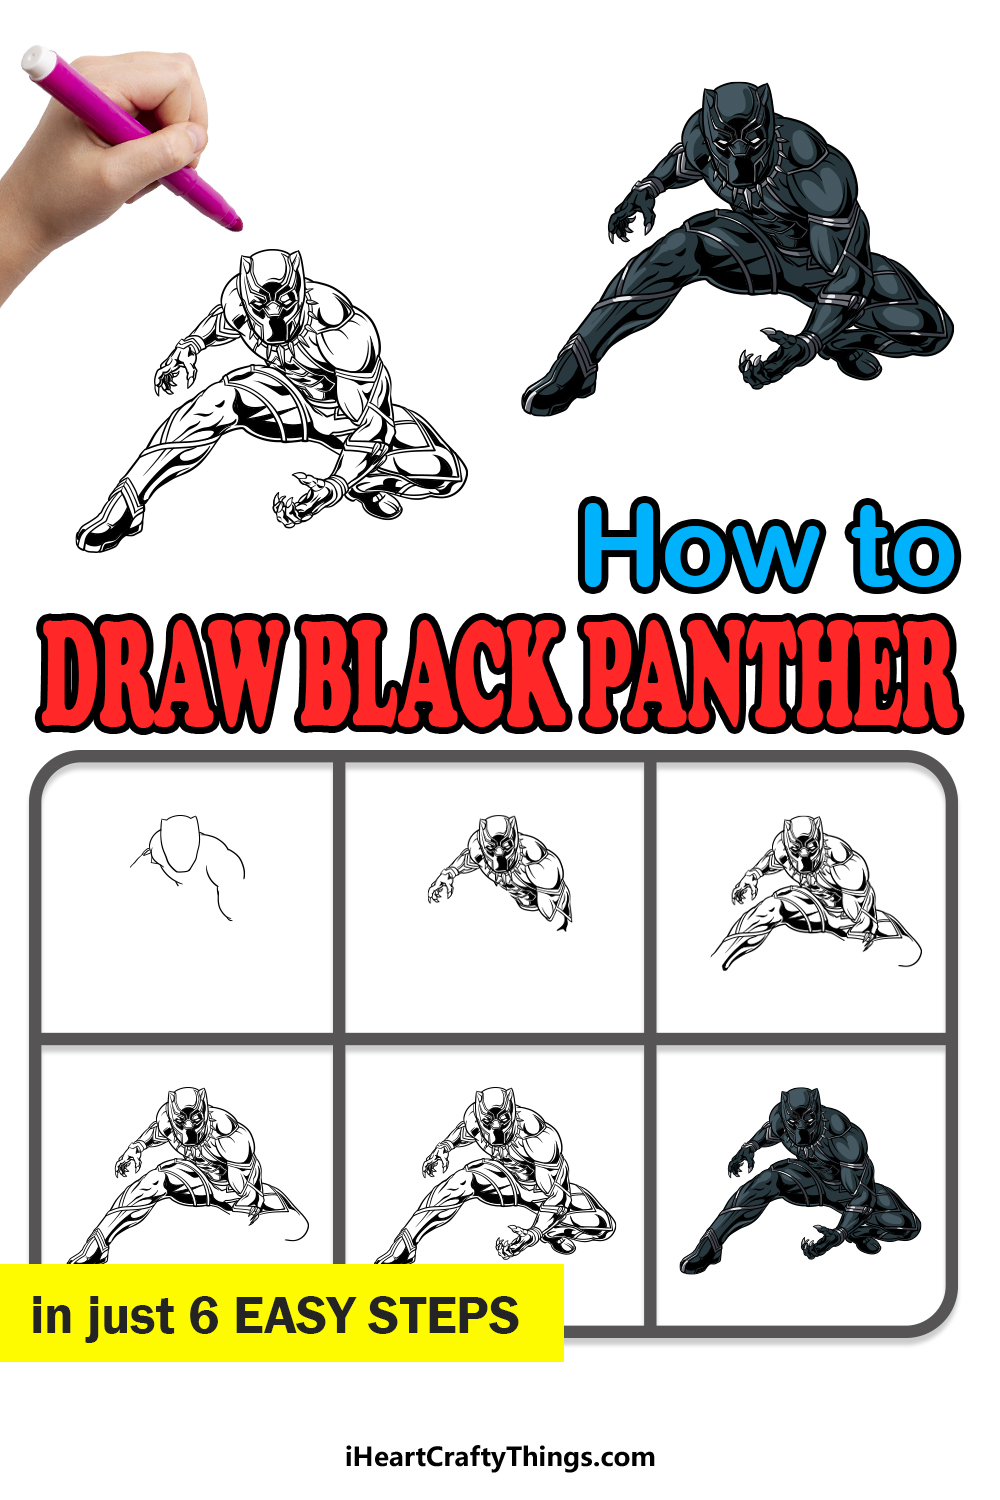 how to draw black panther in 6 easy steps